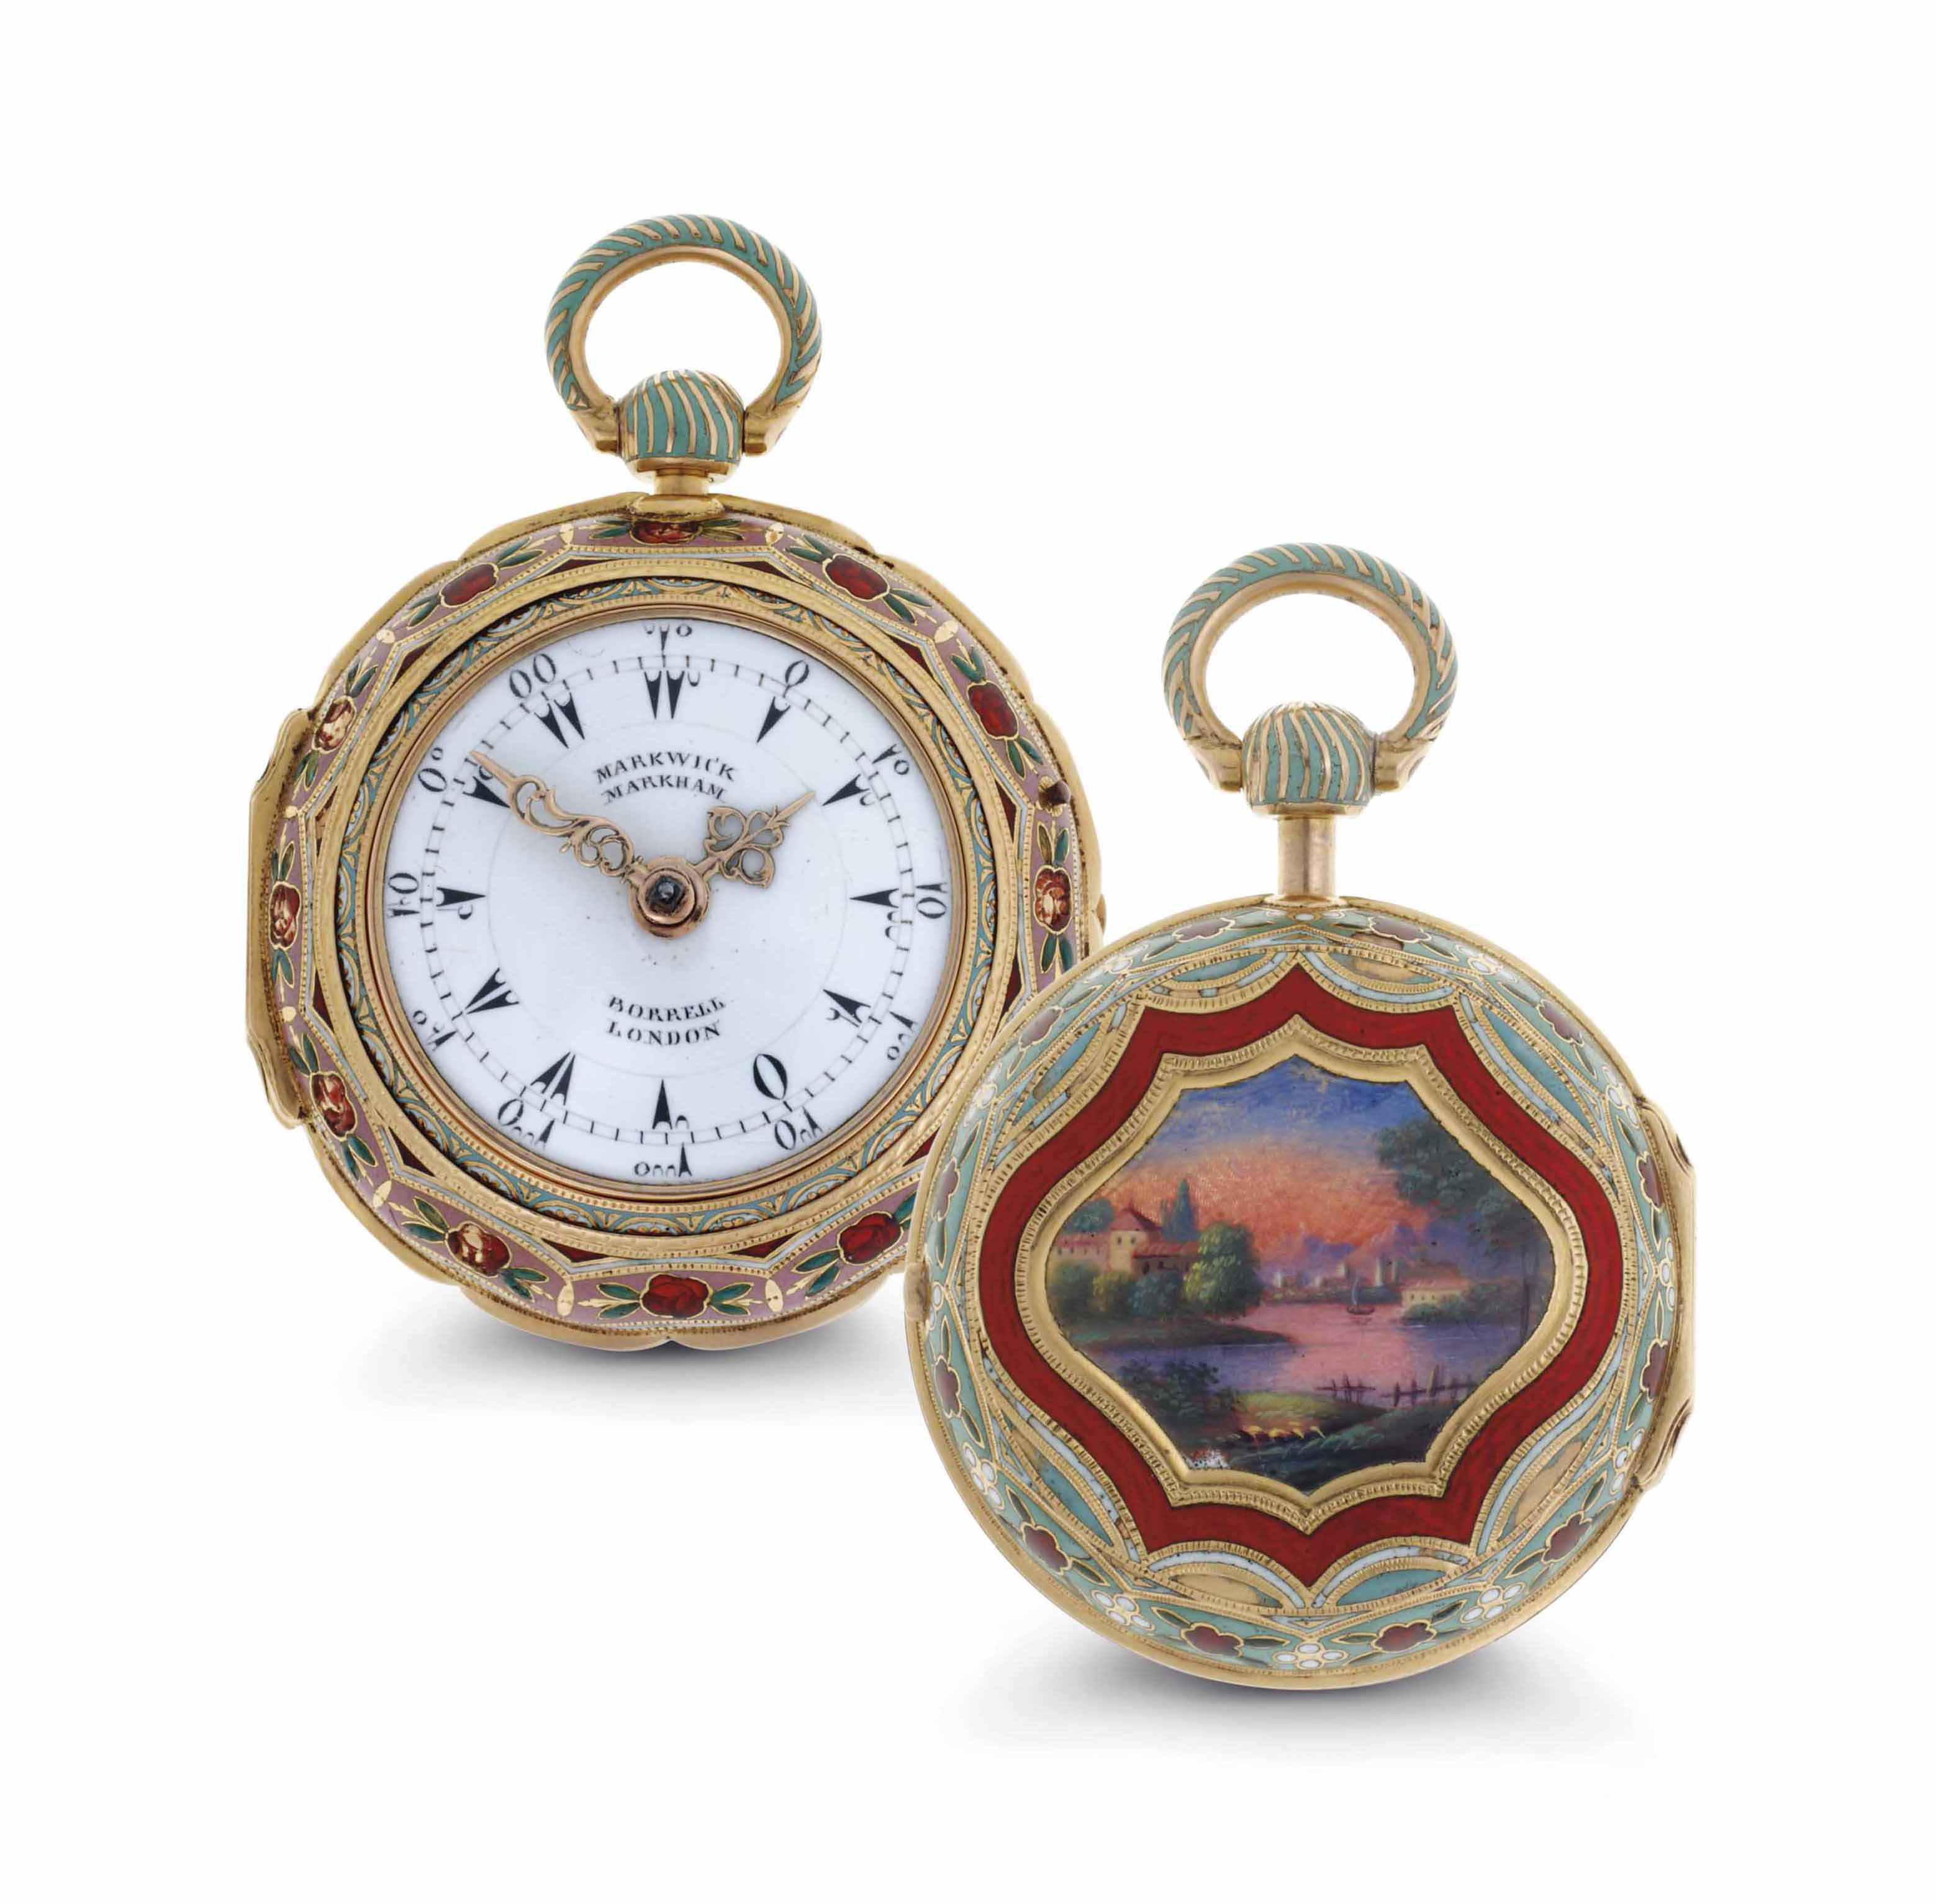 Markwick Markham. A Fine 18k Gold and Enamel Triple Case Openface Verge Watch Made For The Turkish Market